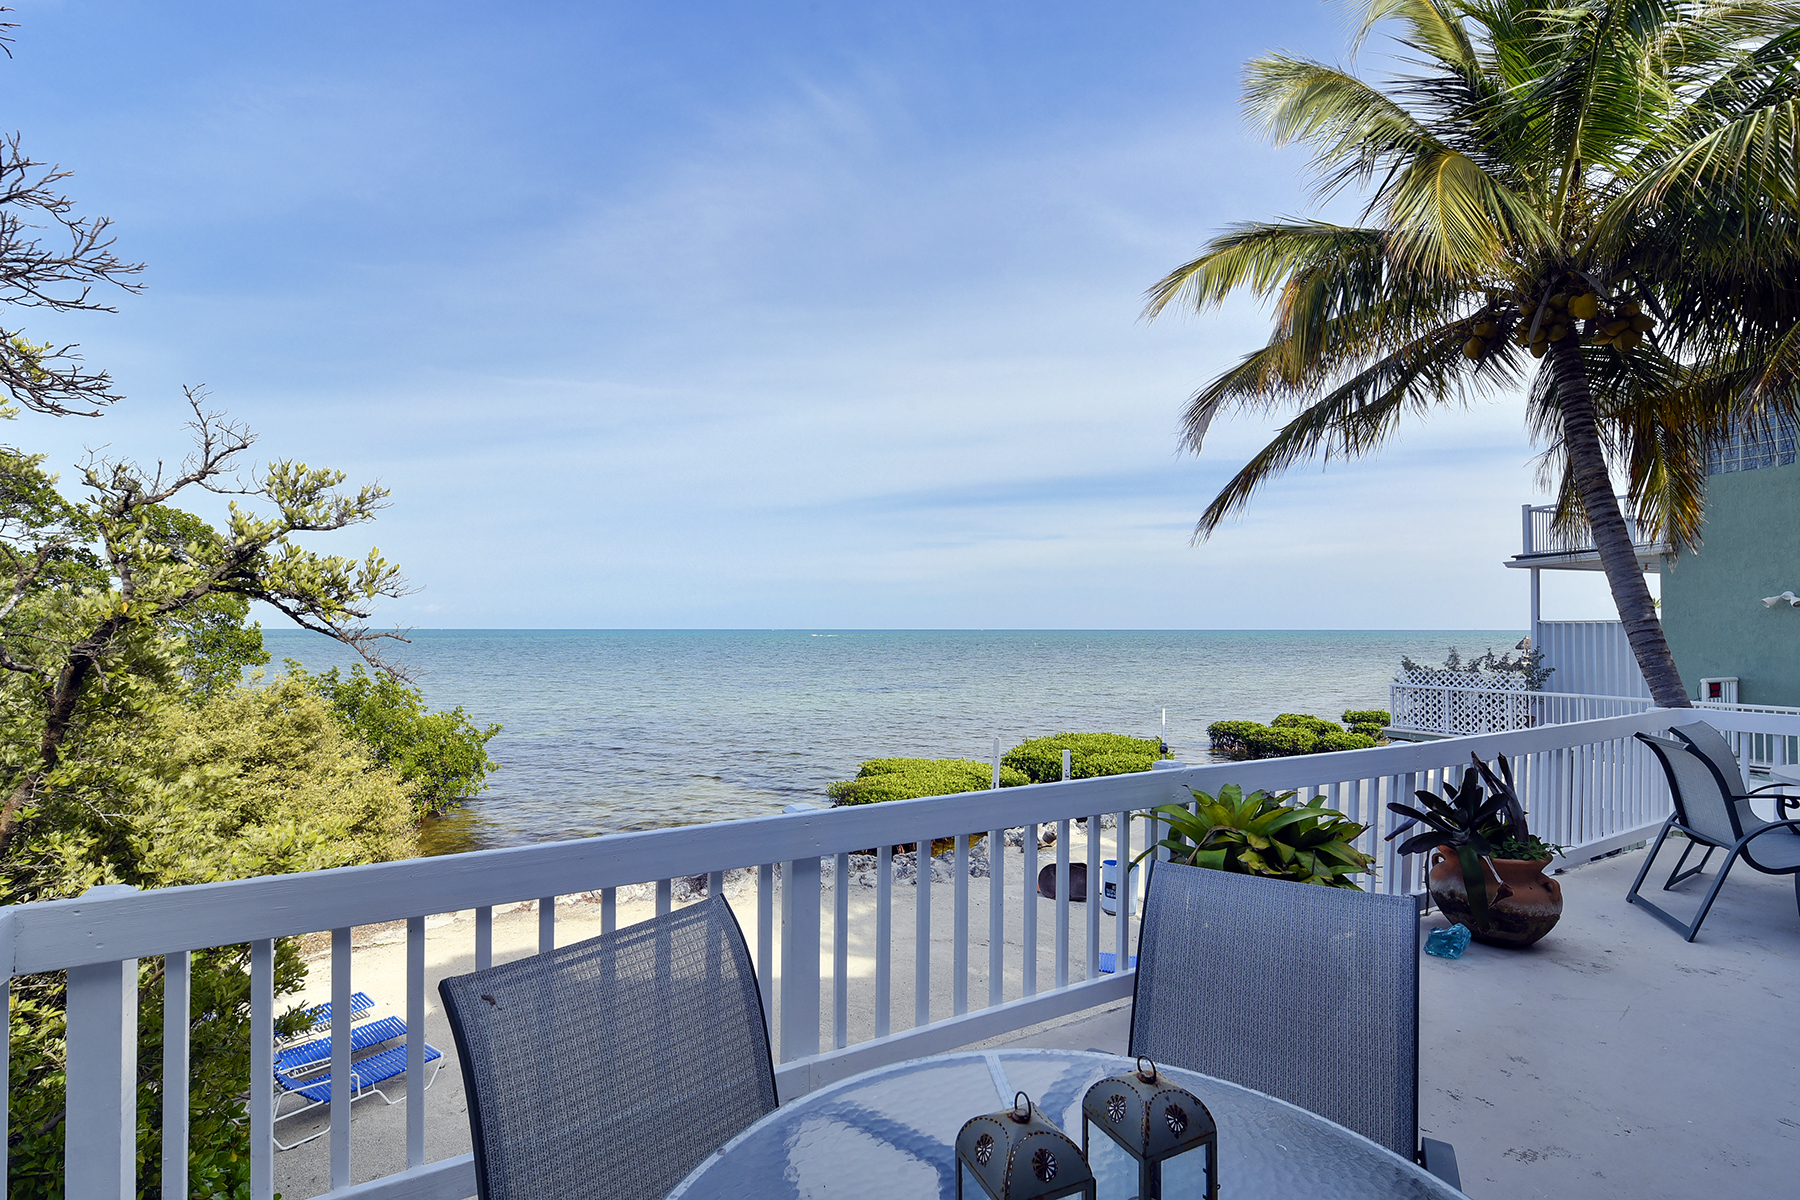 Single Family Home for Sale at Sweeping Ocean Views 316 North Drive Florida Keys, Islamorada, Florida, 33036 United States